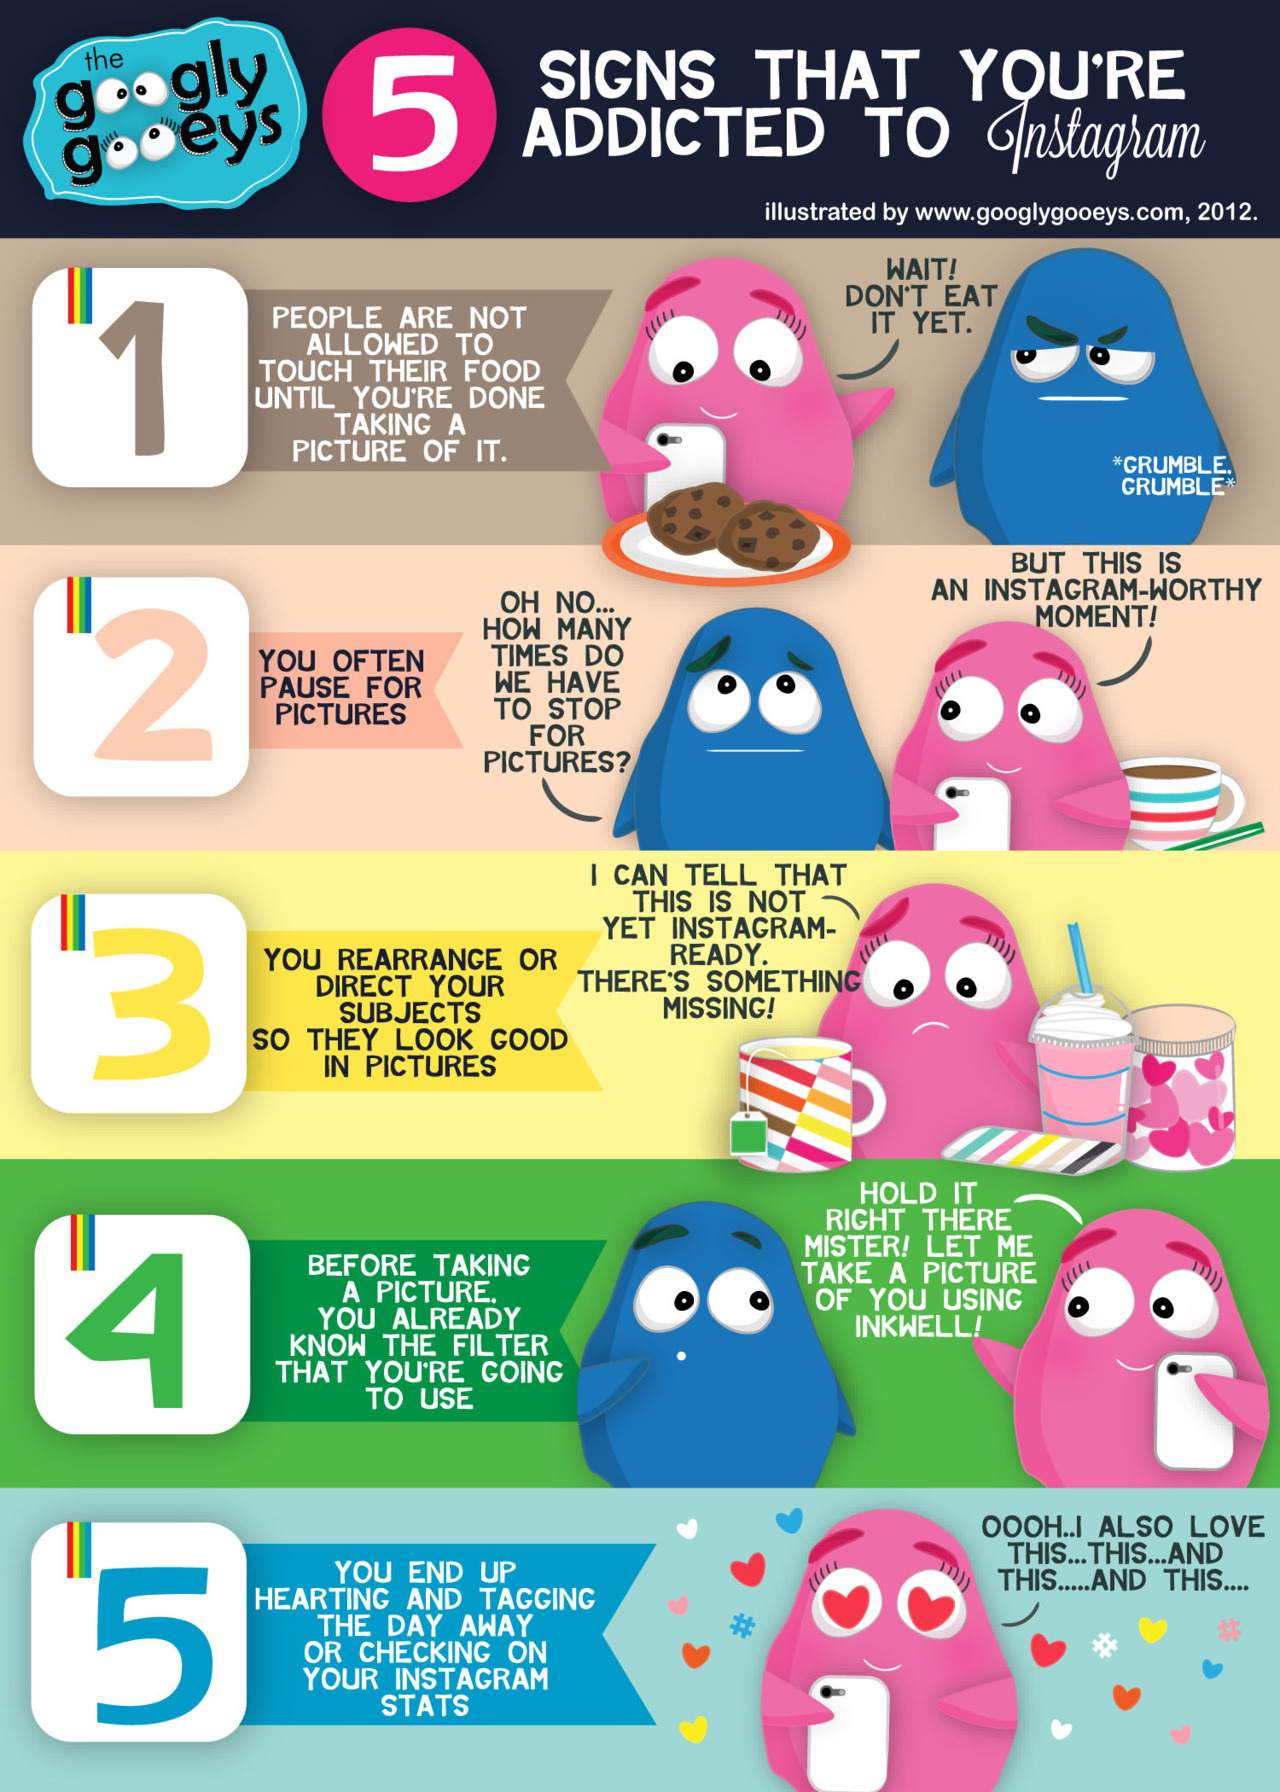 Signs That You're Addicted to Instagram! Follow The Googly Gooeys on Instagram: googlygooeys F